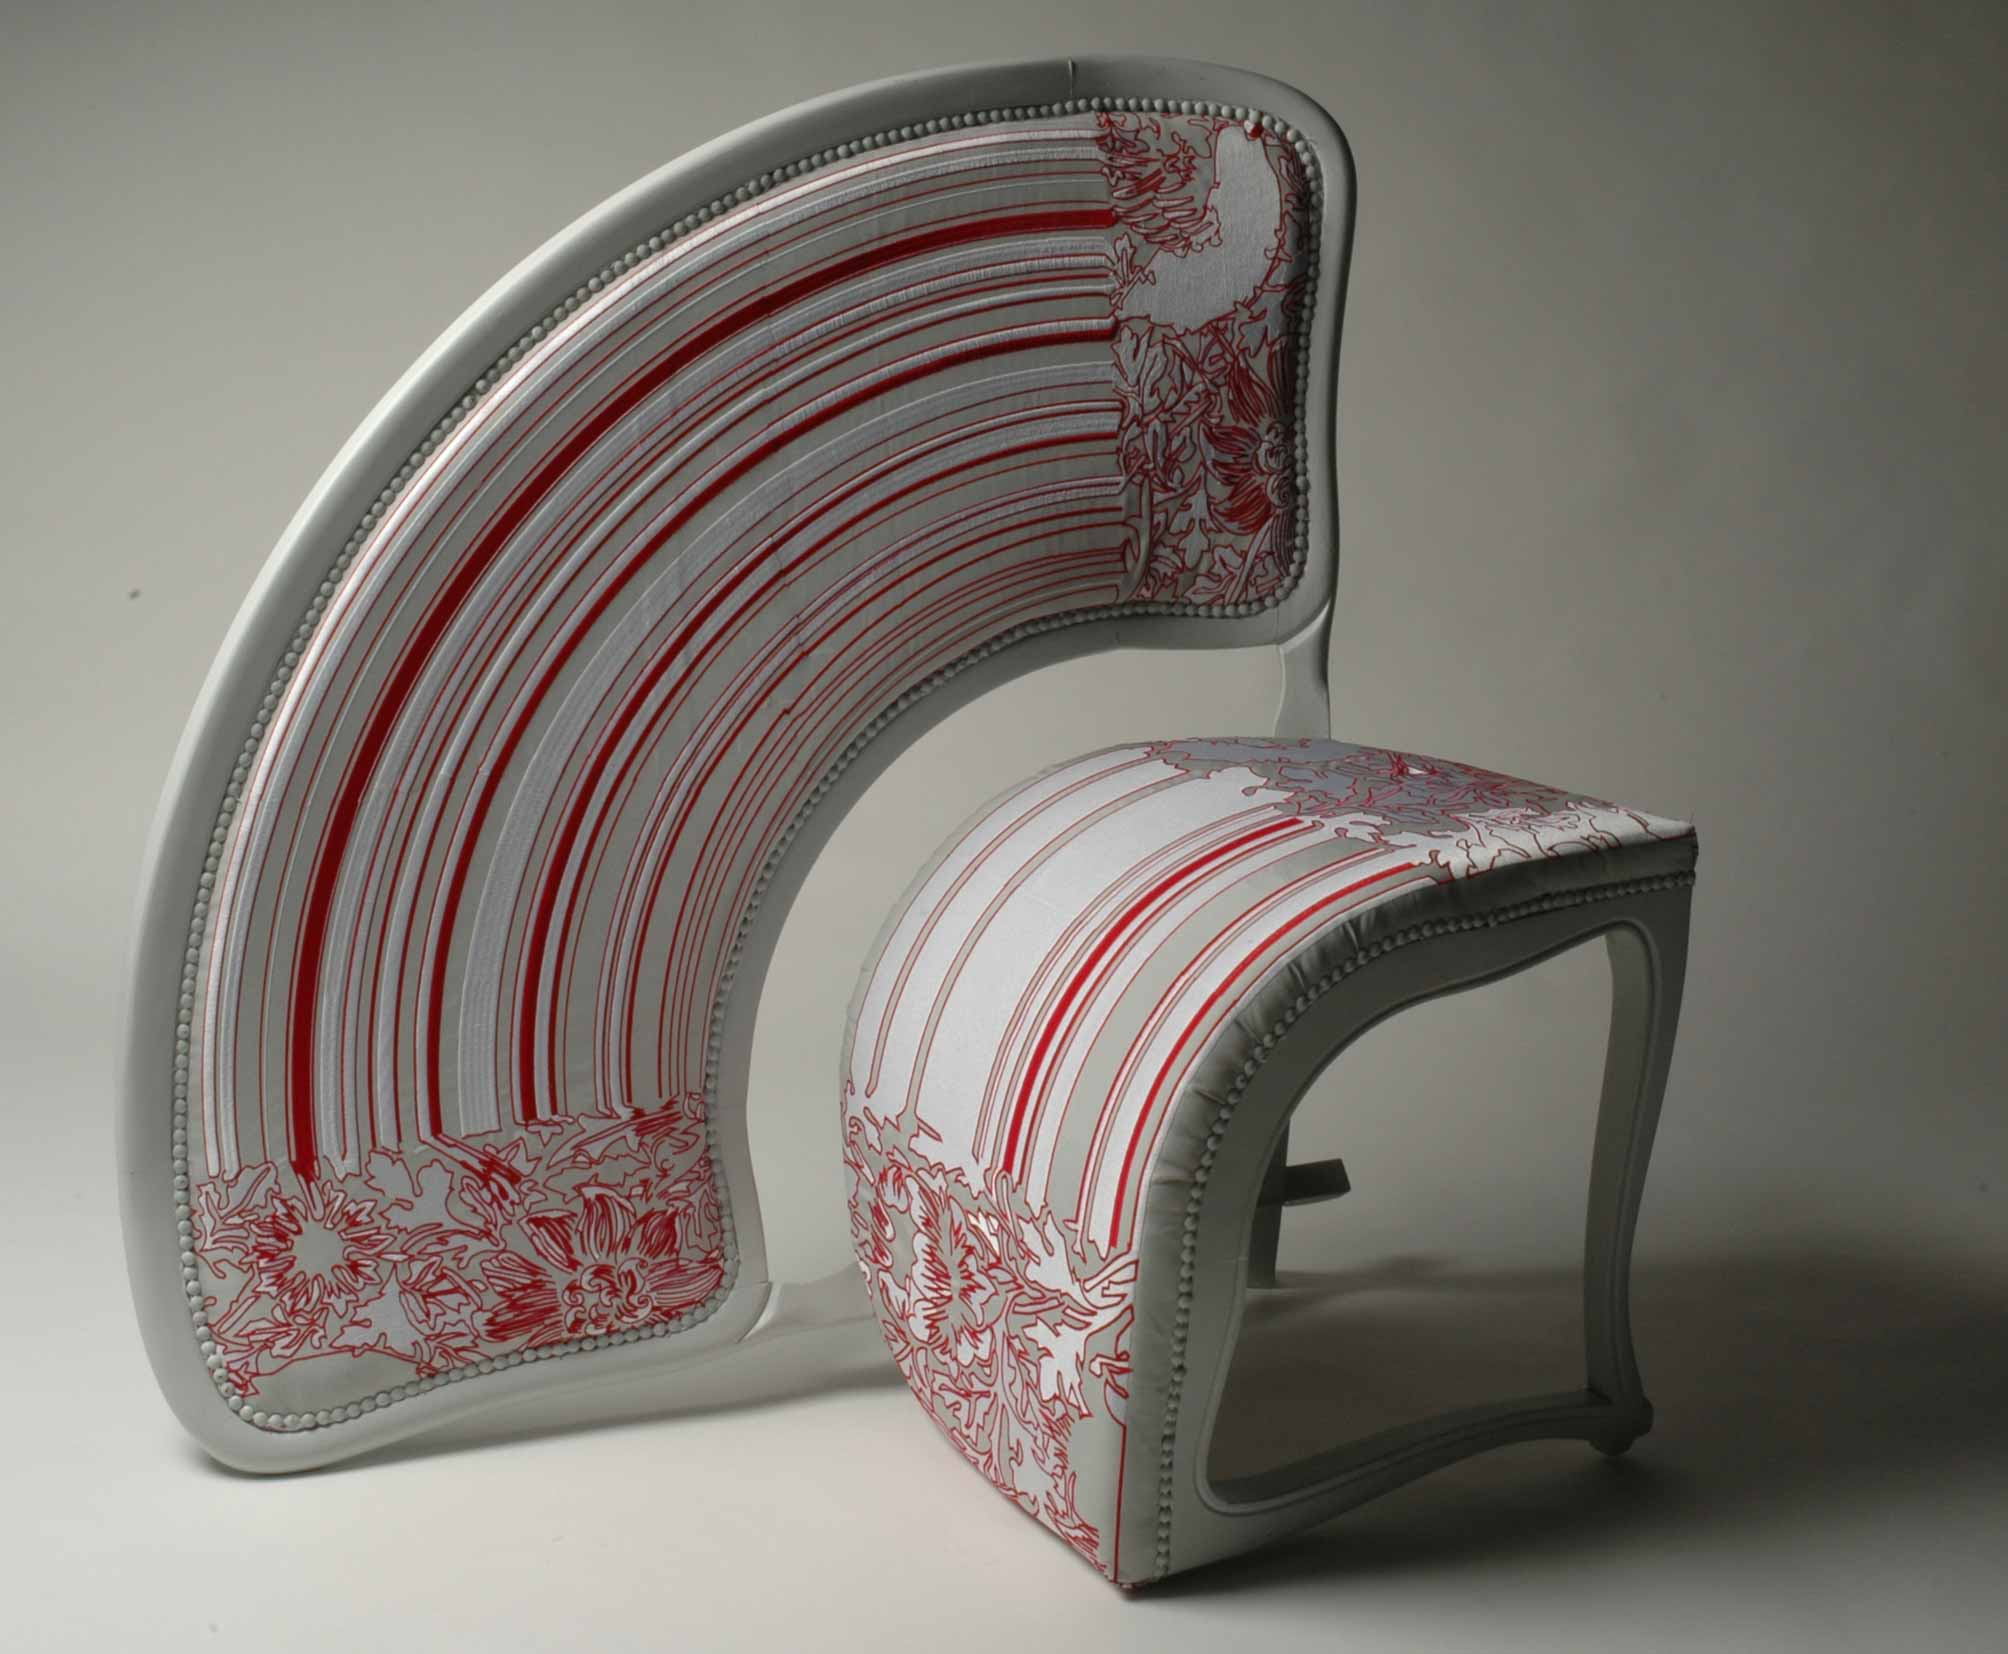 Sebastian brajkovic kezhandcars for Unusual furniture ideas